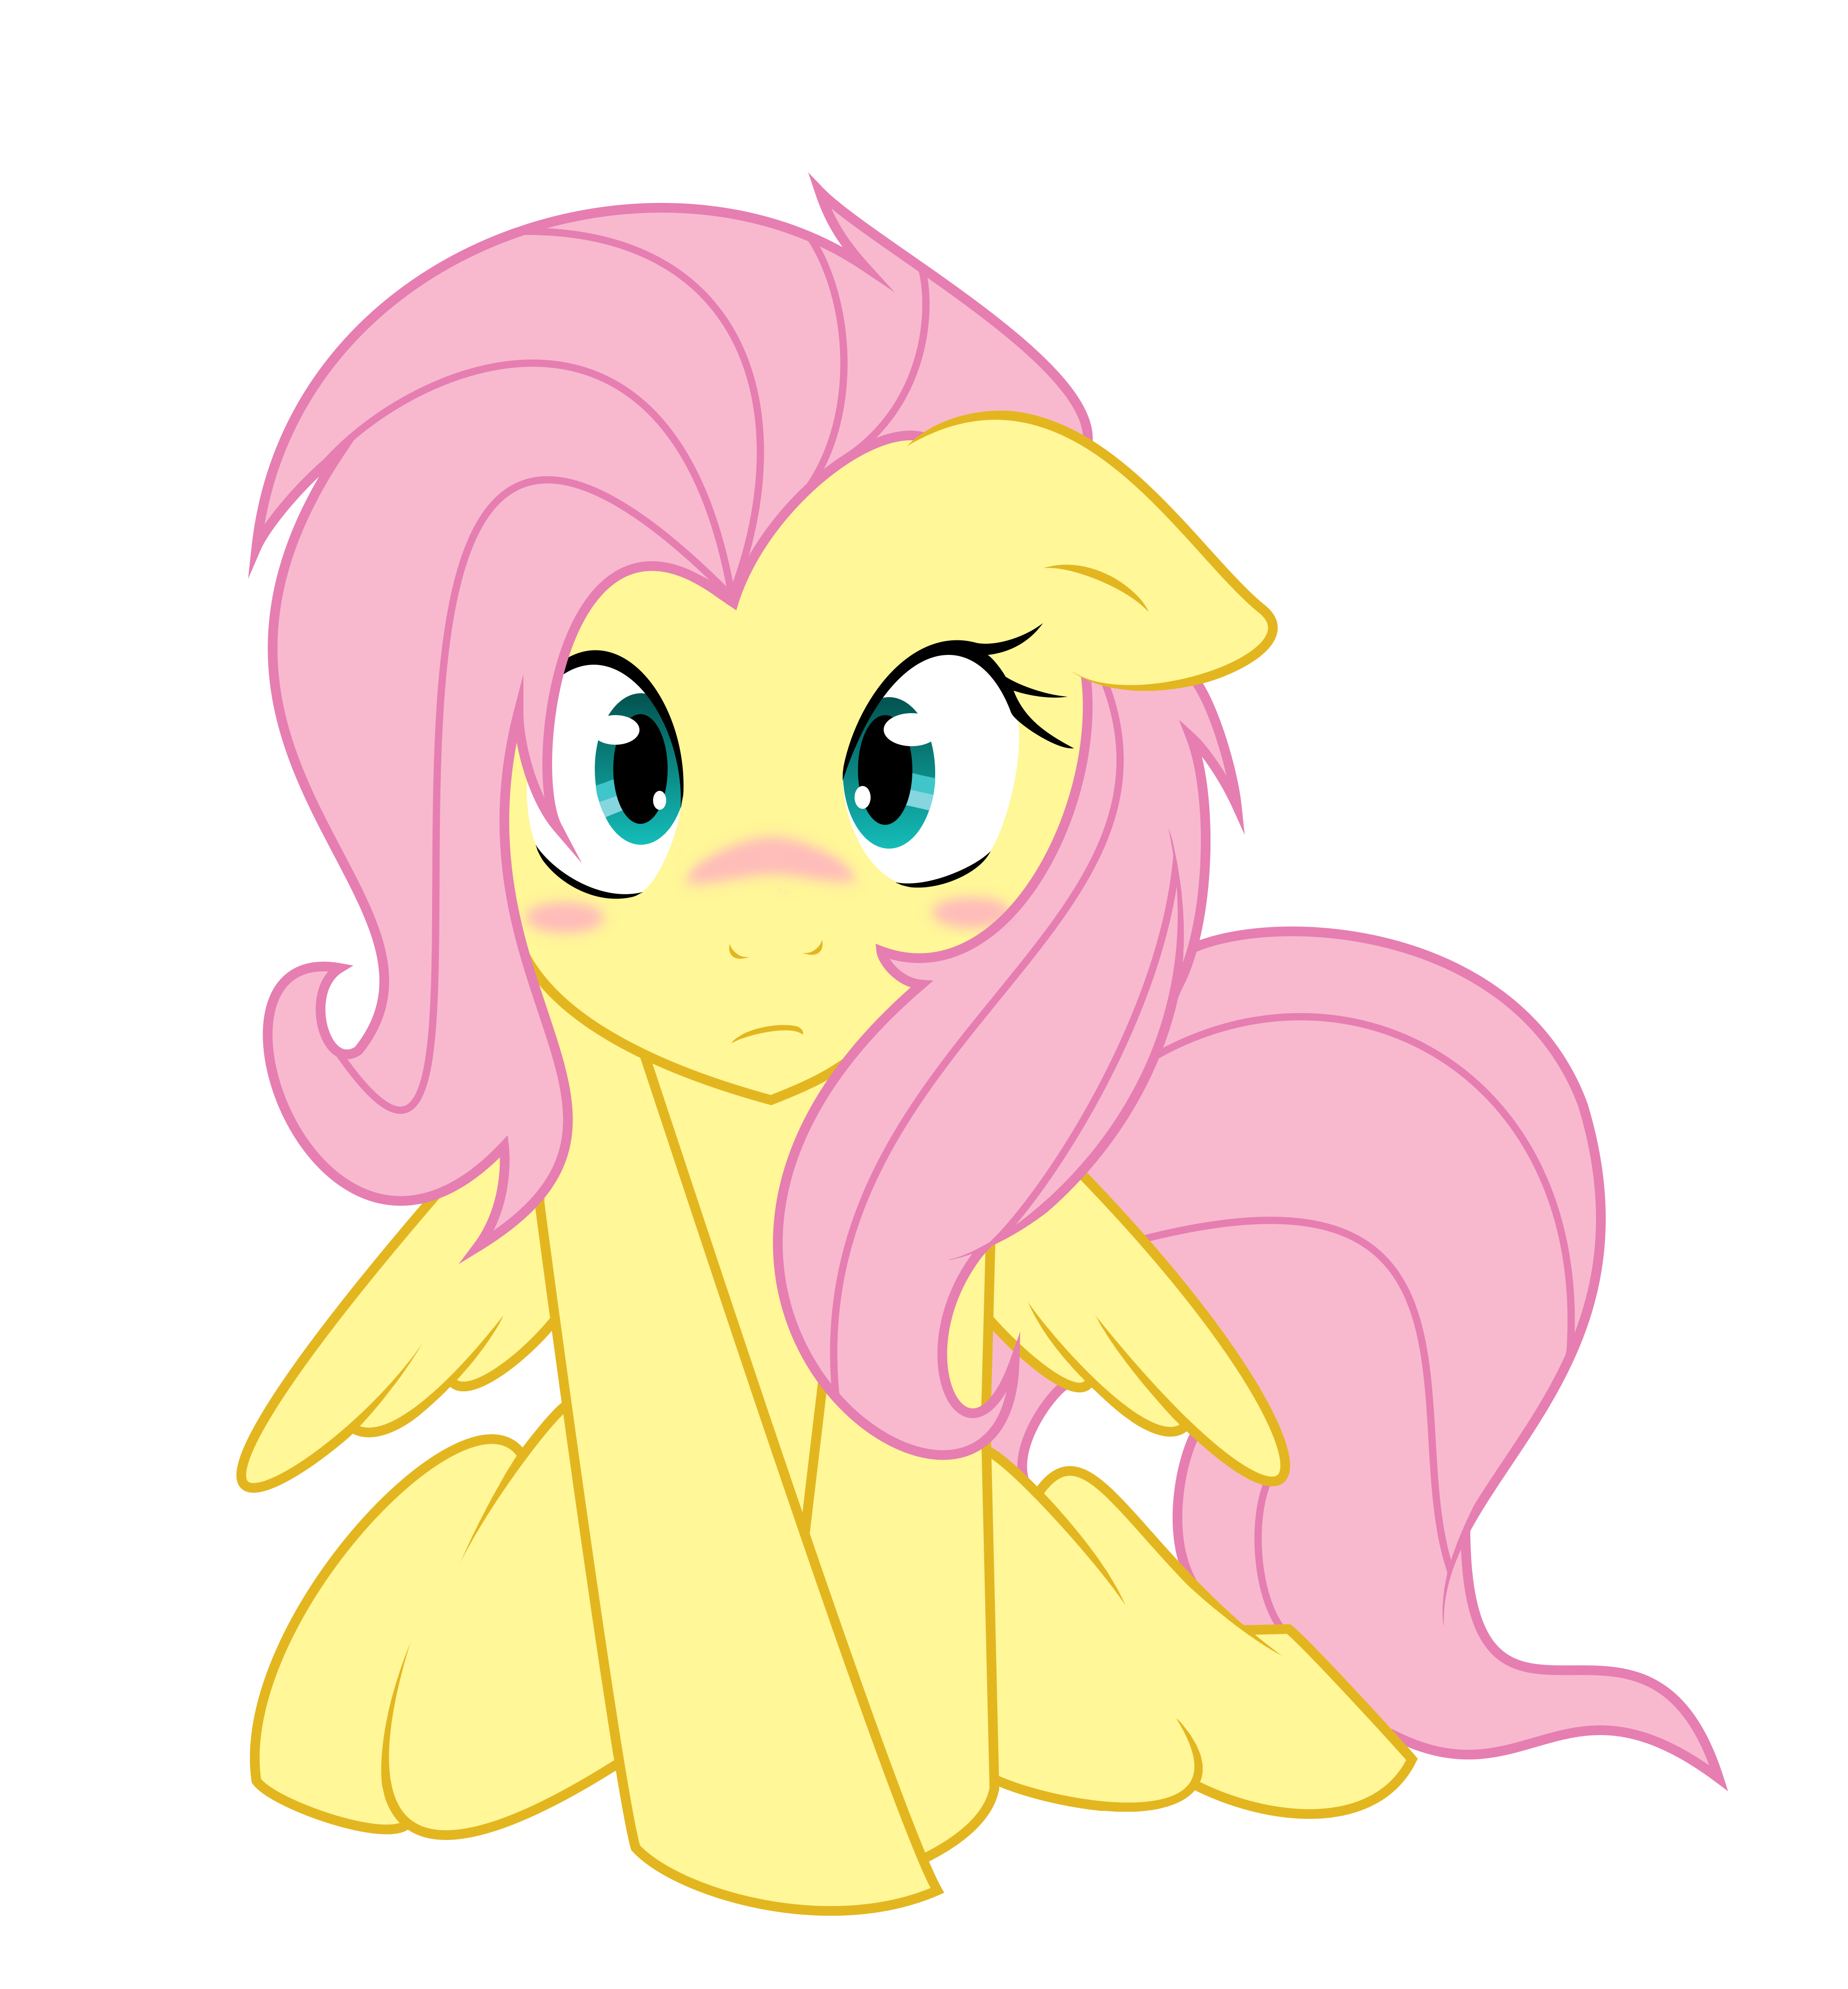 Adorable Fluttershy by tyler611